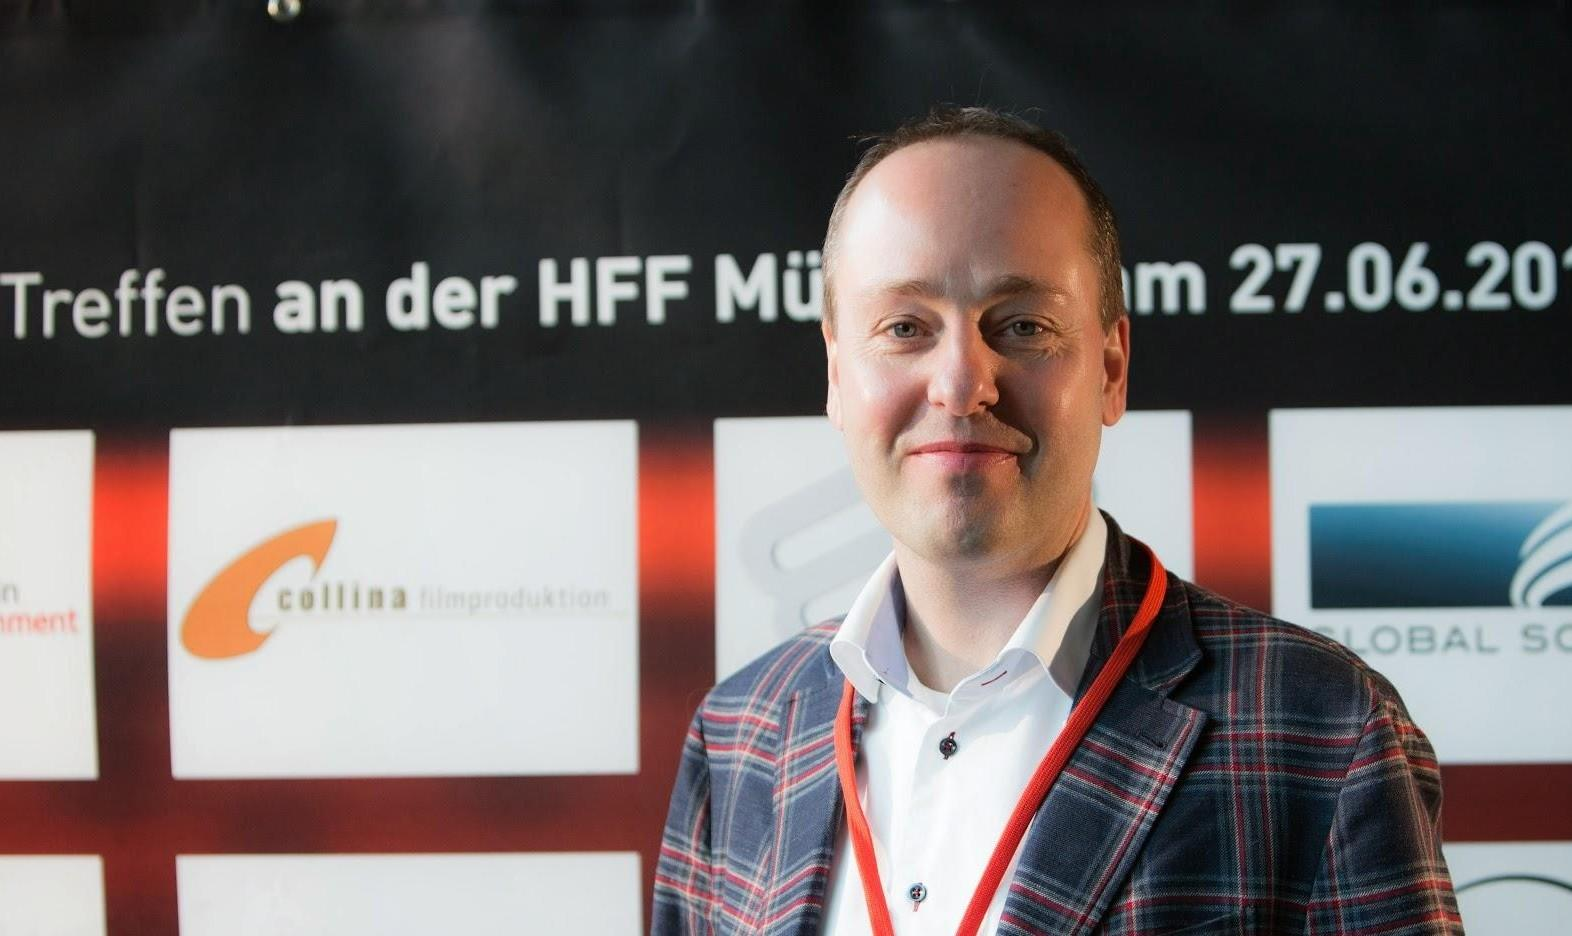 fgf-guide und fgf-newsletter